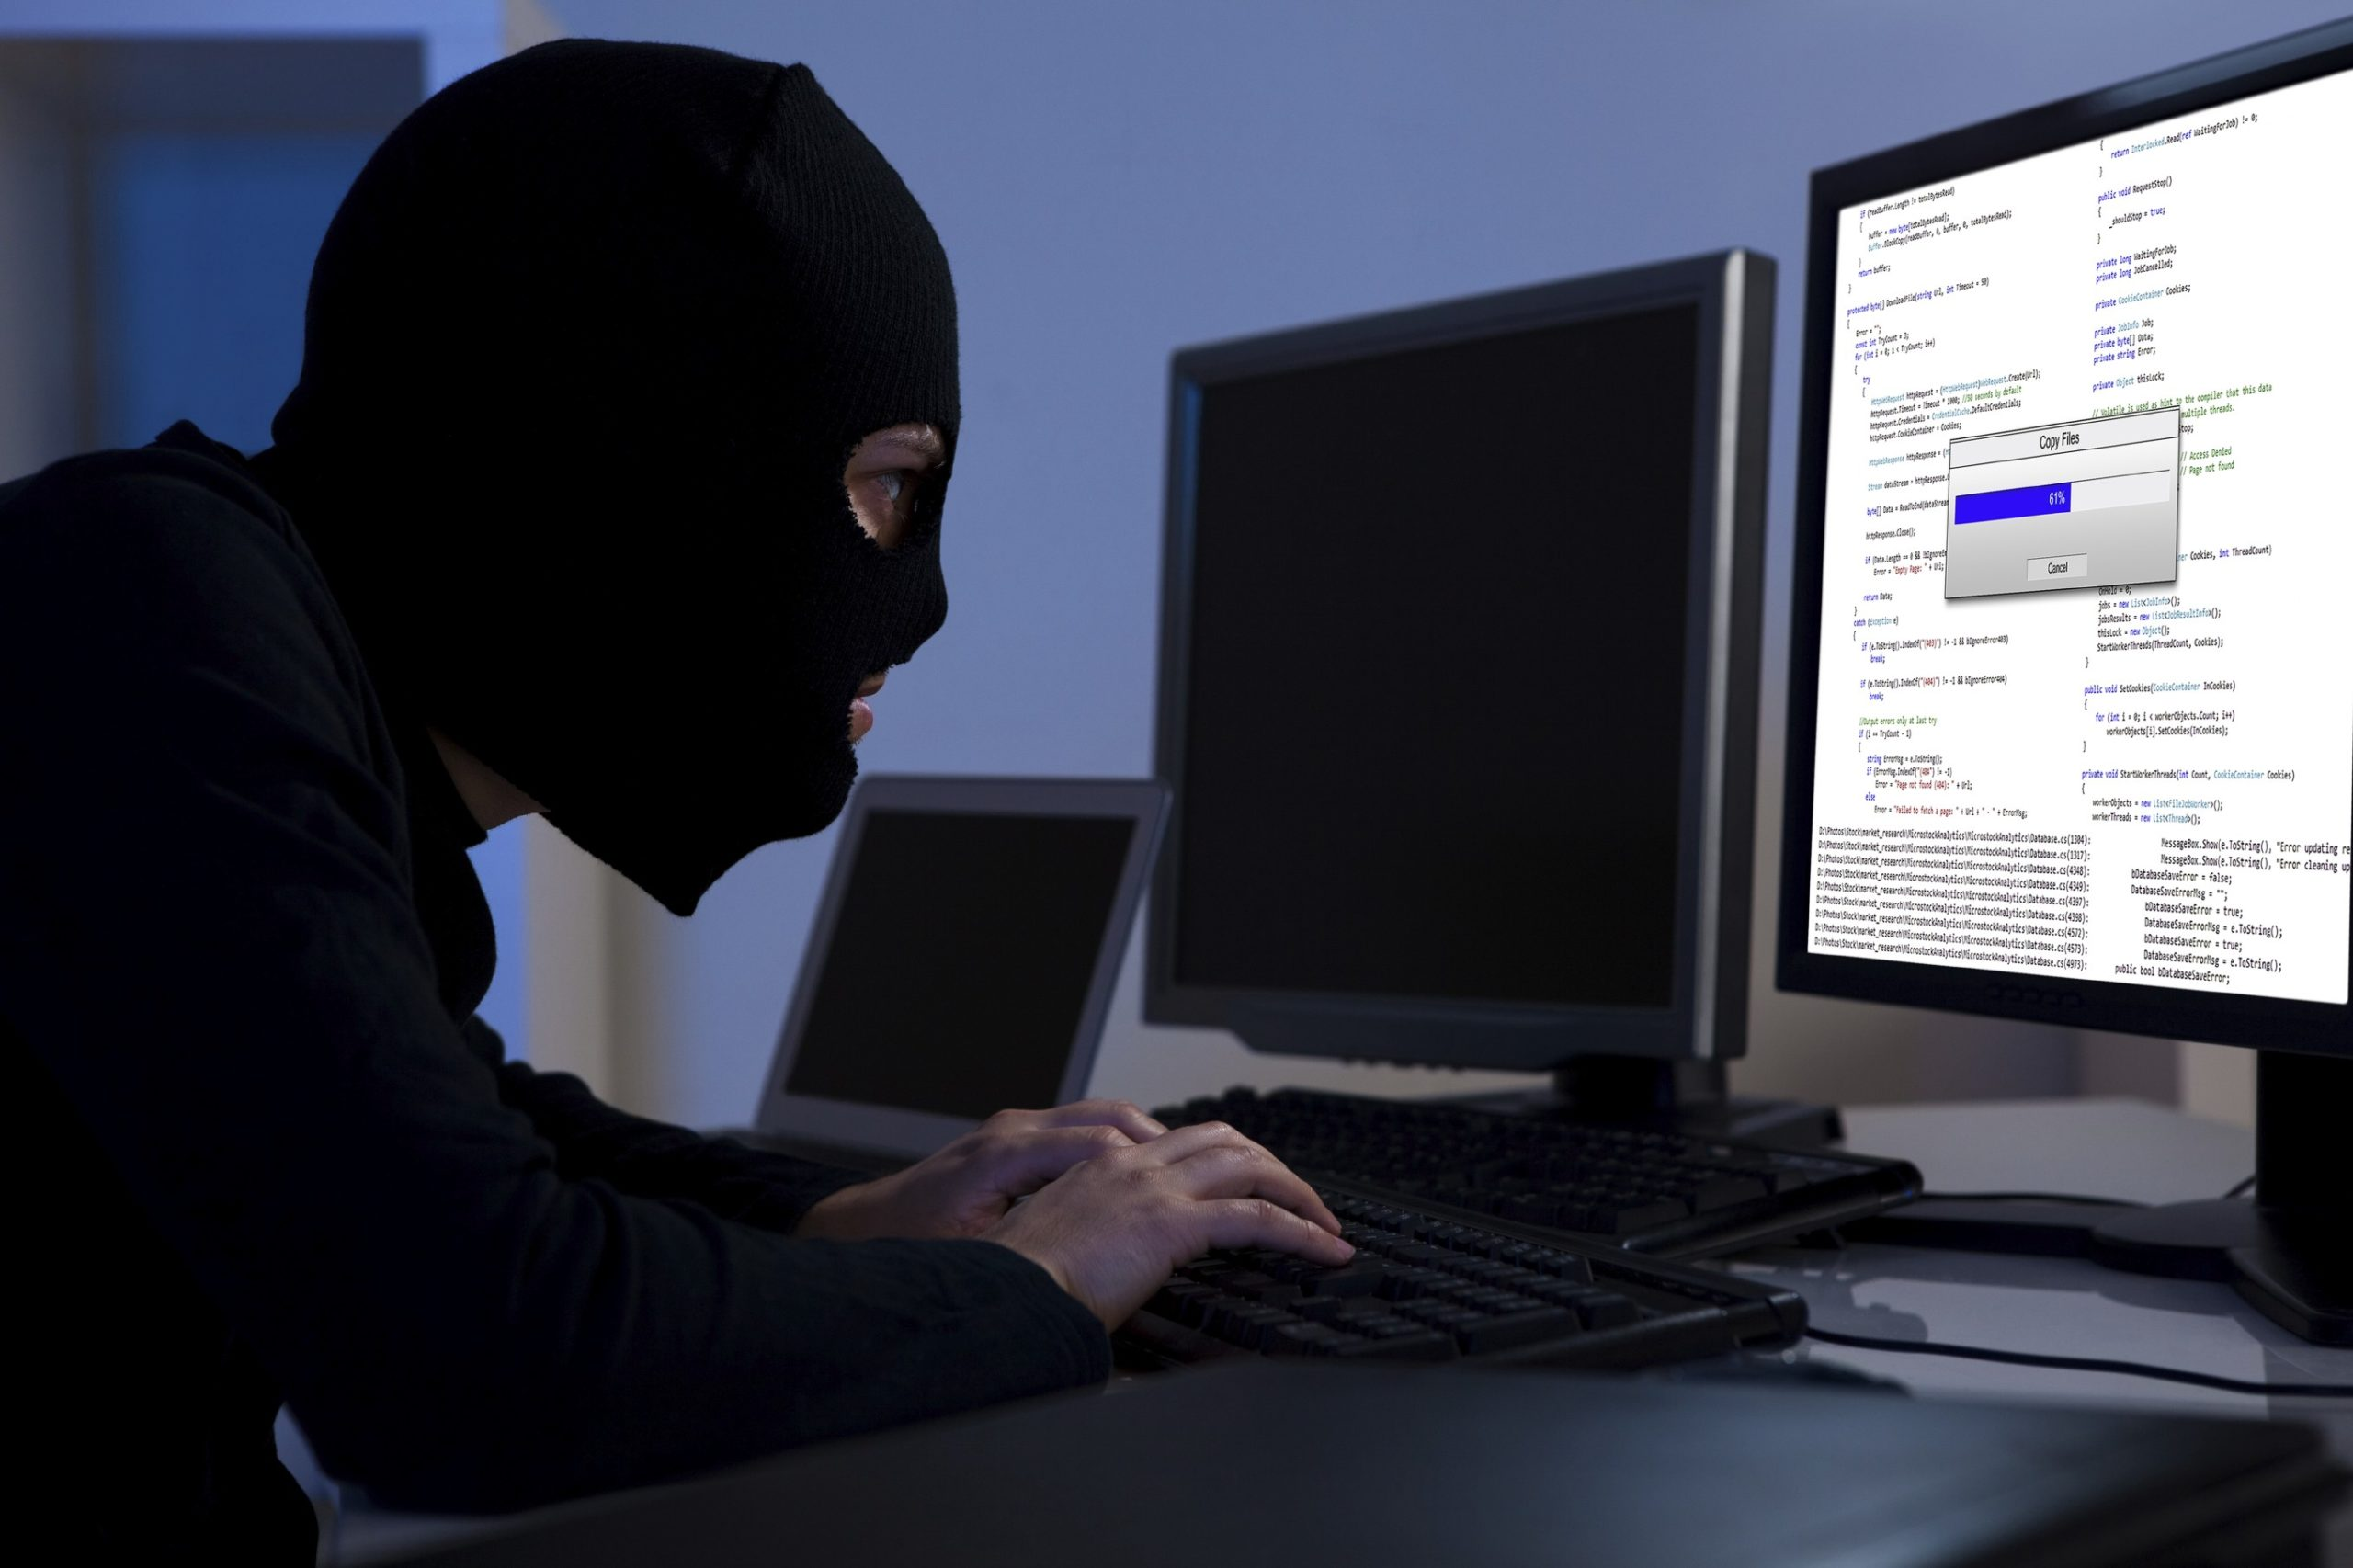 How to keep computer safe from hackers